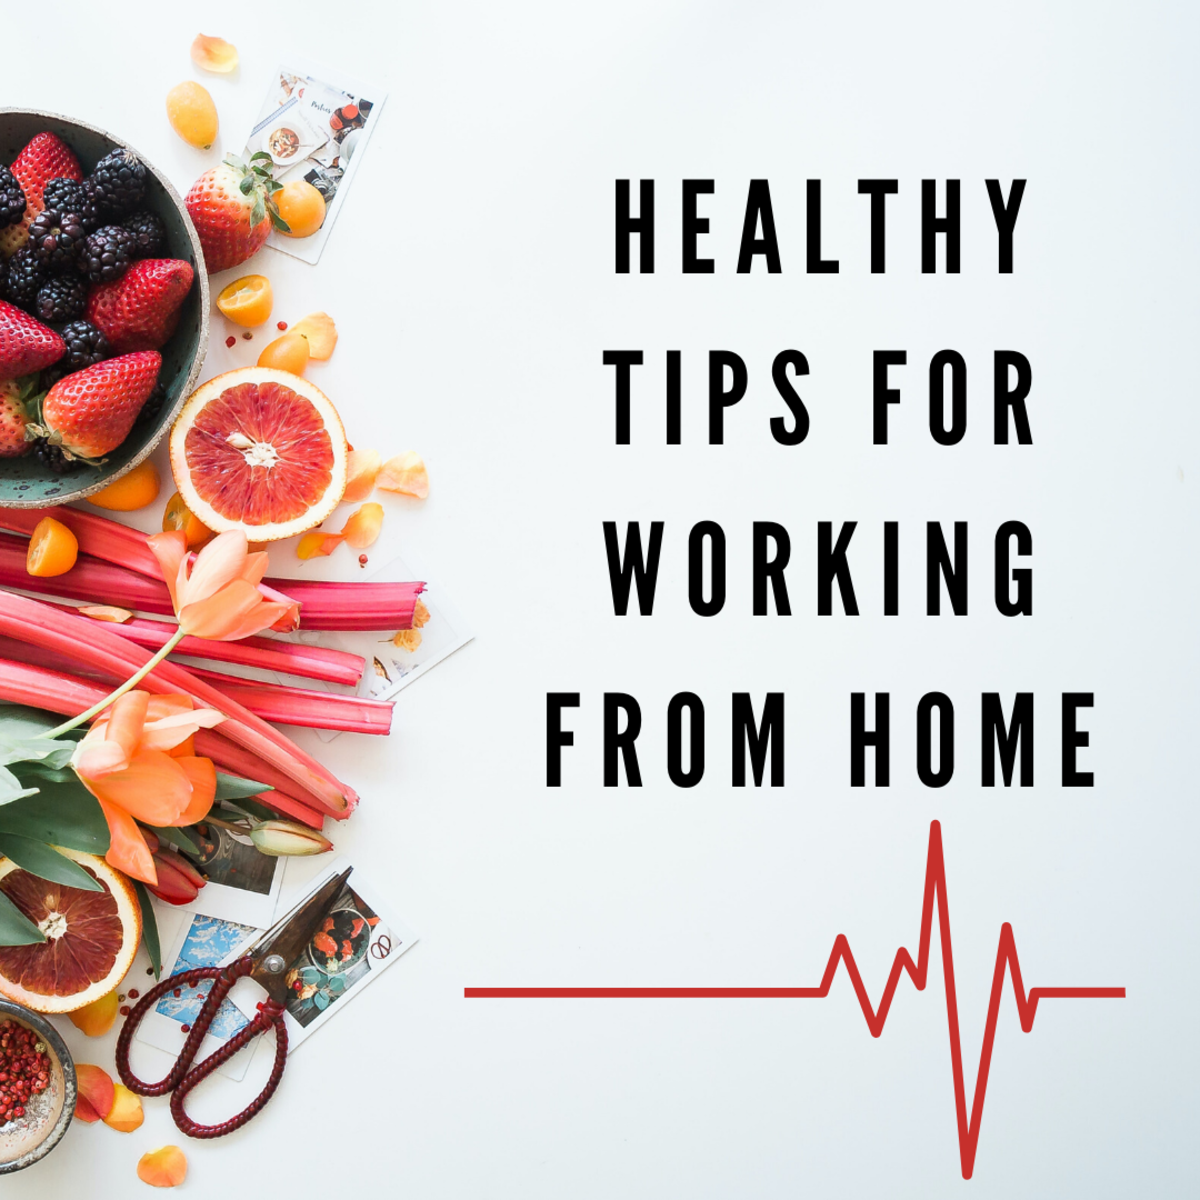 Healthy Tips for Working From Home